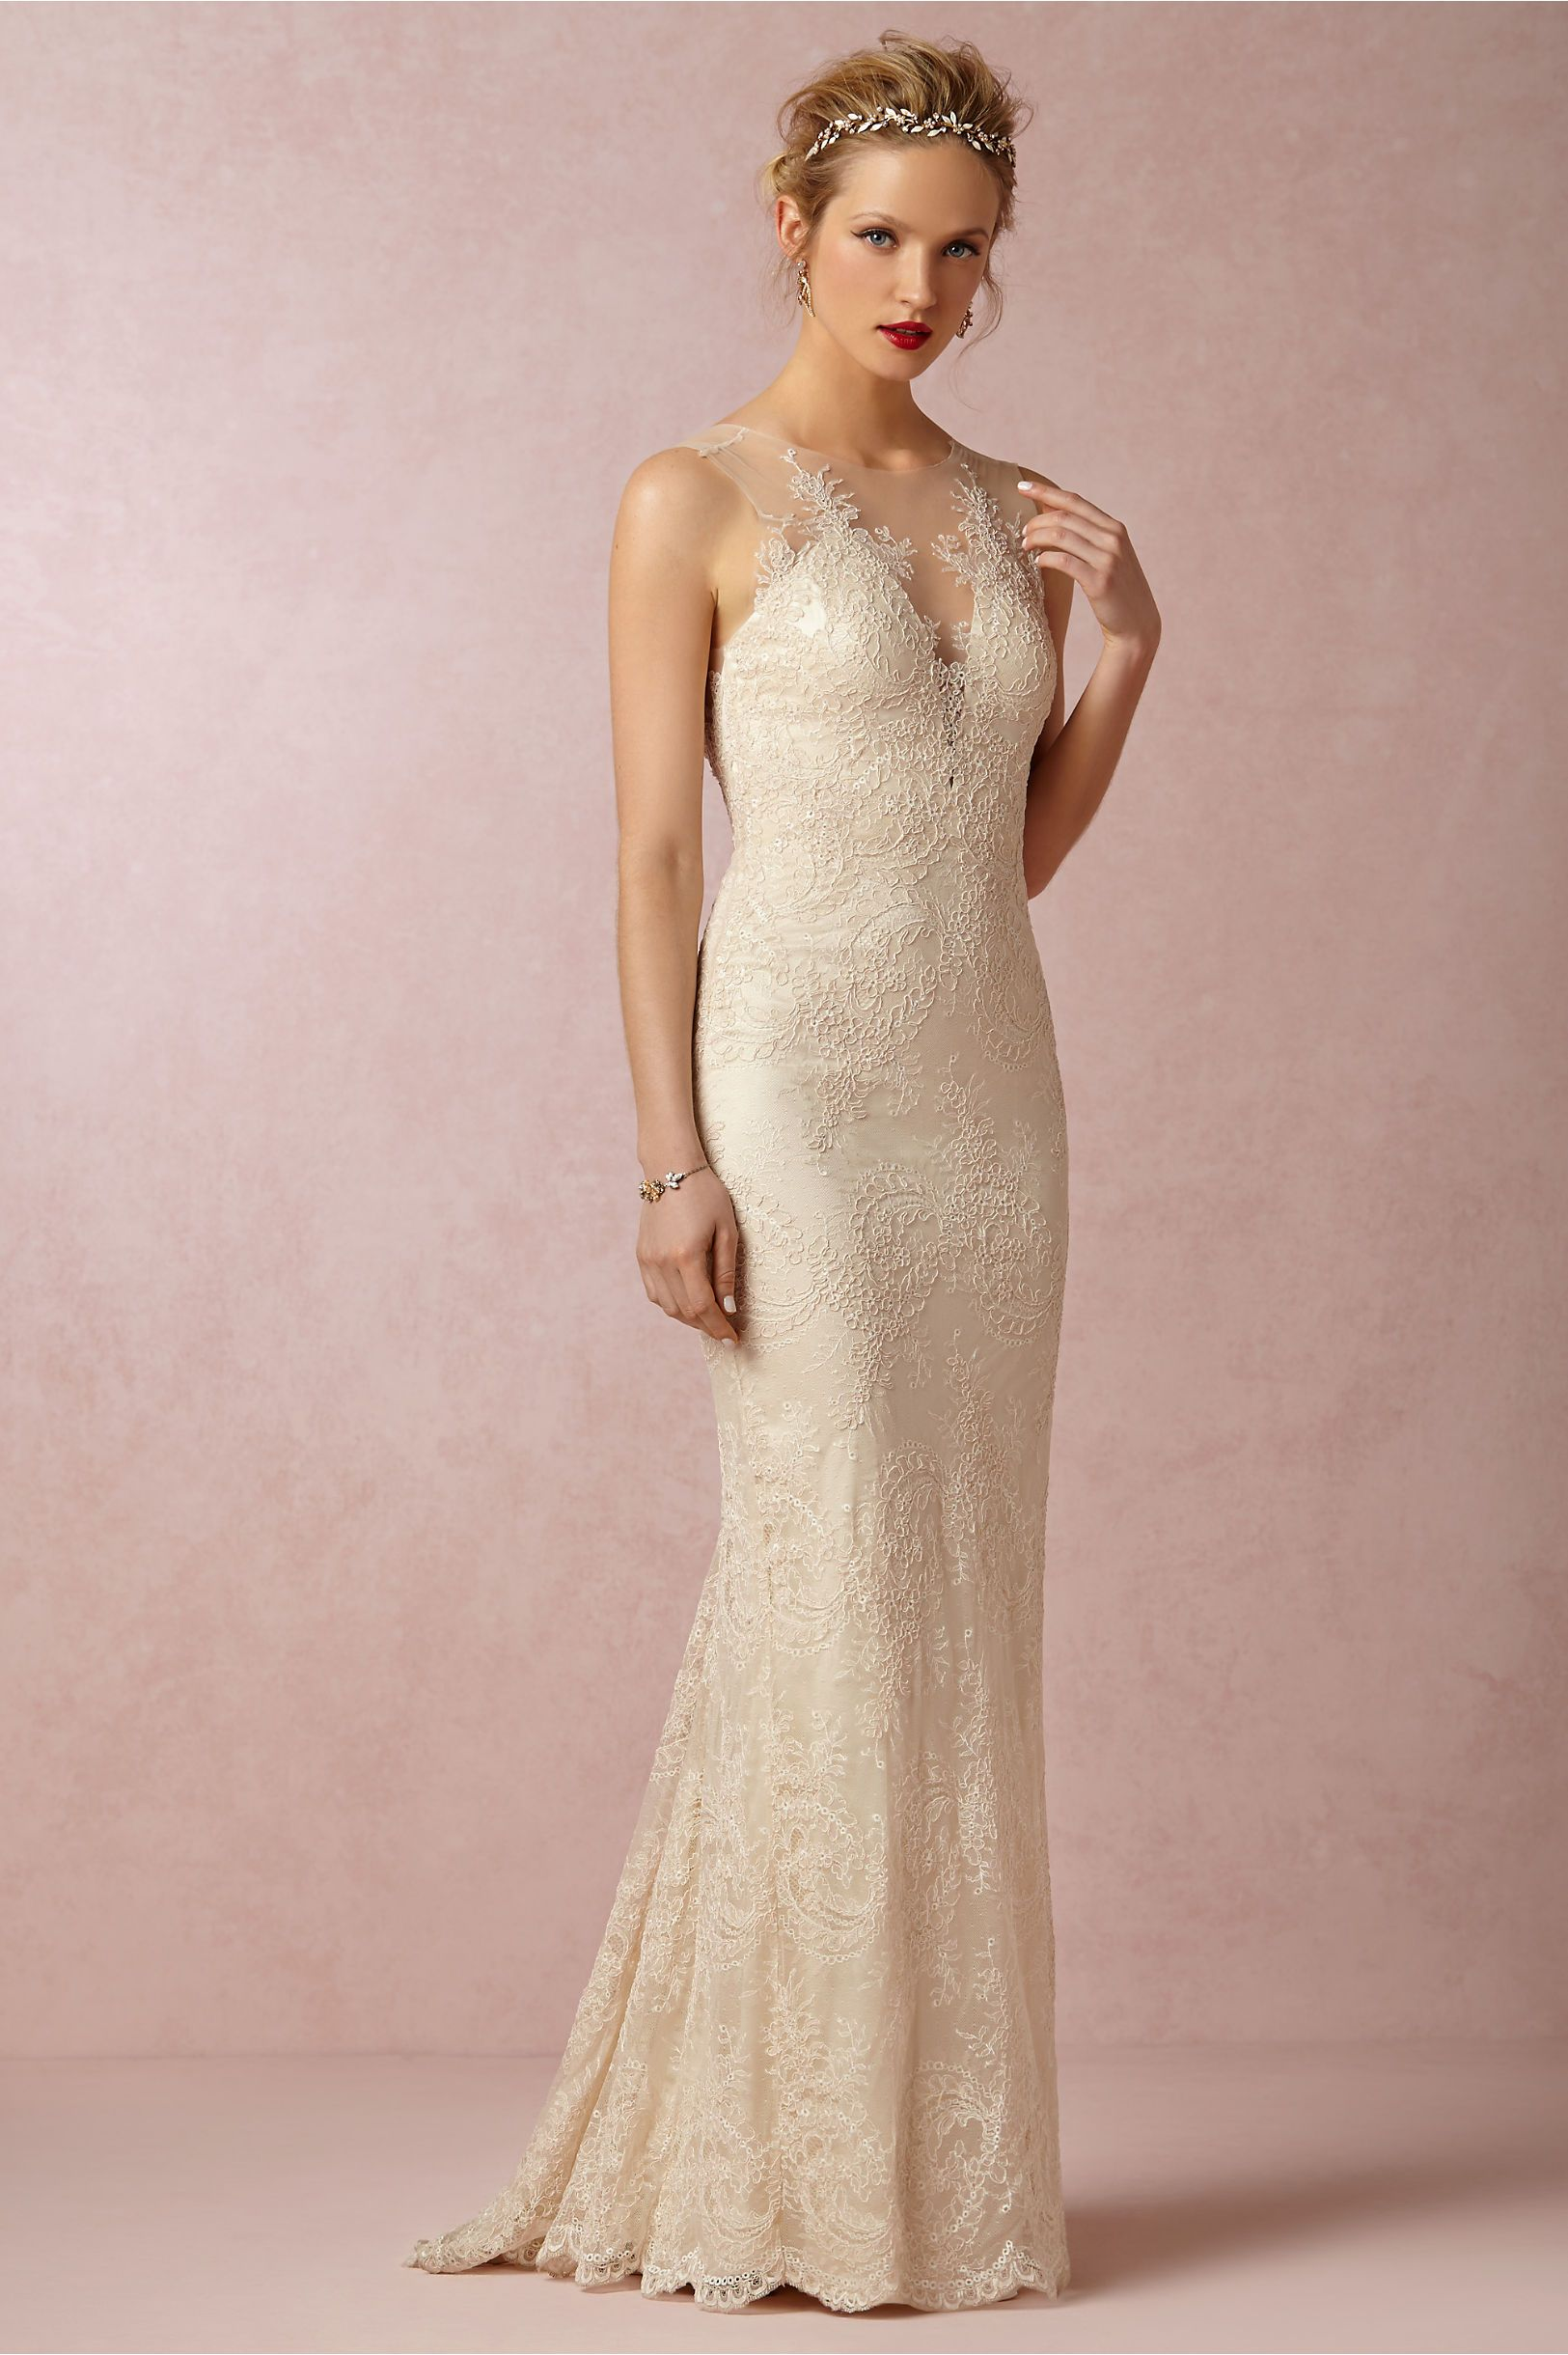 Yasmin Gown from BHLDN | Dressy dress | Pinterest | Boda, Diciembre ...